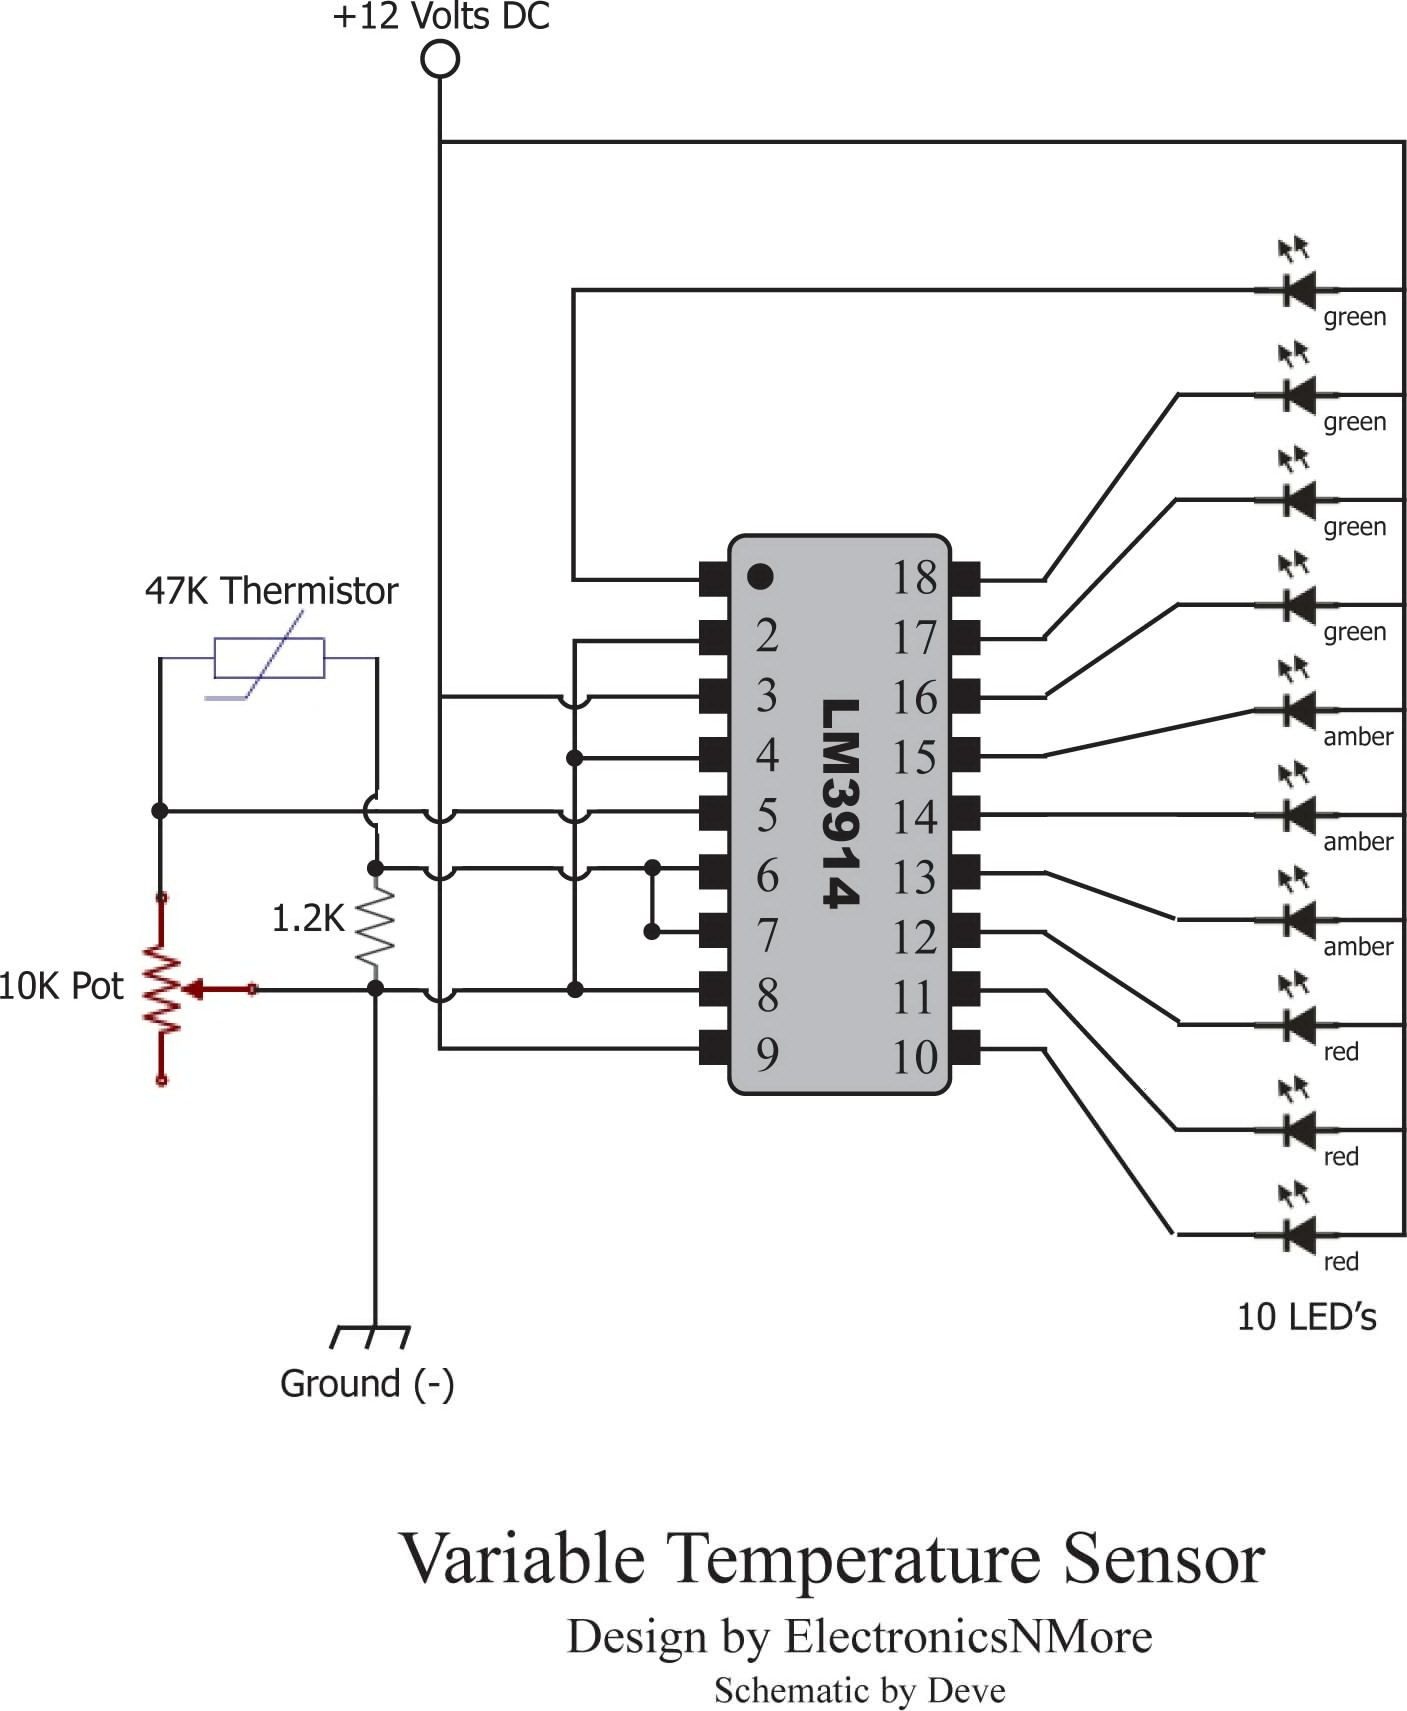 tyco 5 blade relay wiring diagram - wiring diagram